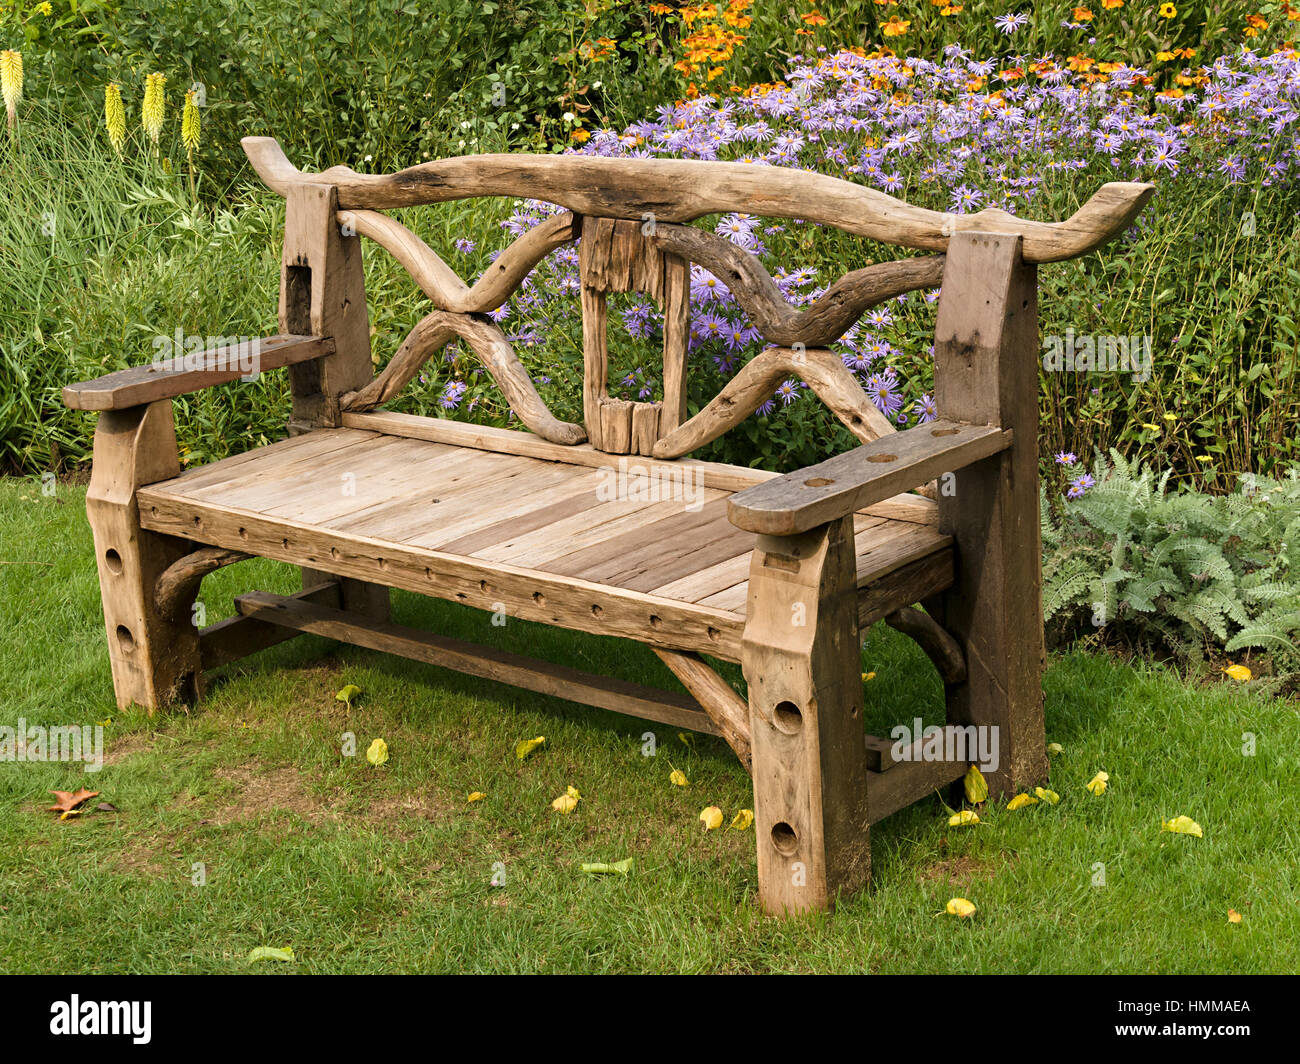 Cool Ornate Rustic Wooden Garden Bench Seat Made From Recycled Gmtry Best Dining Table And Chair Ideas Images Gmtryco